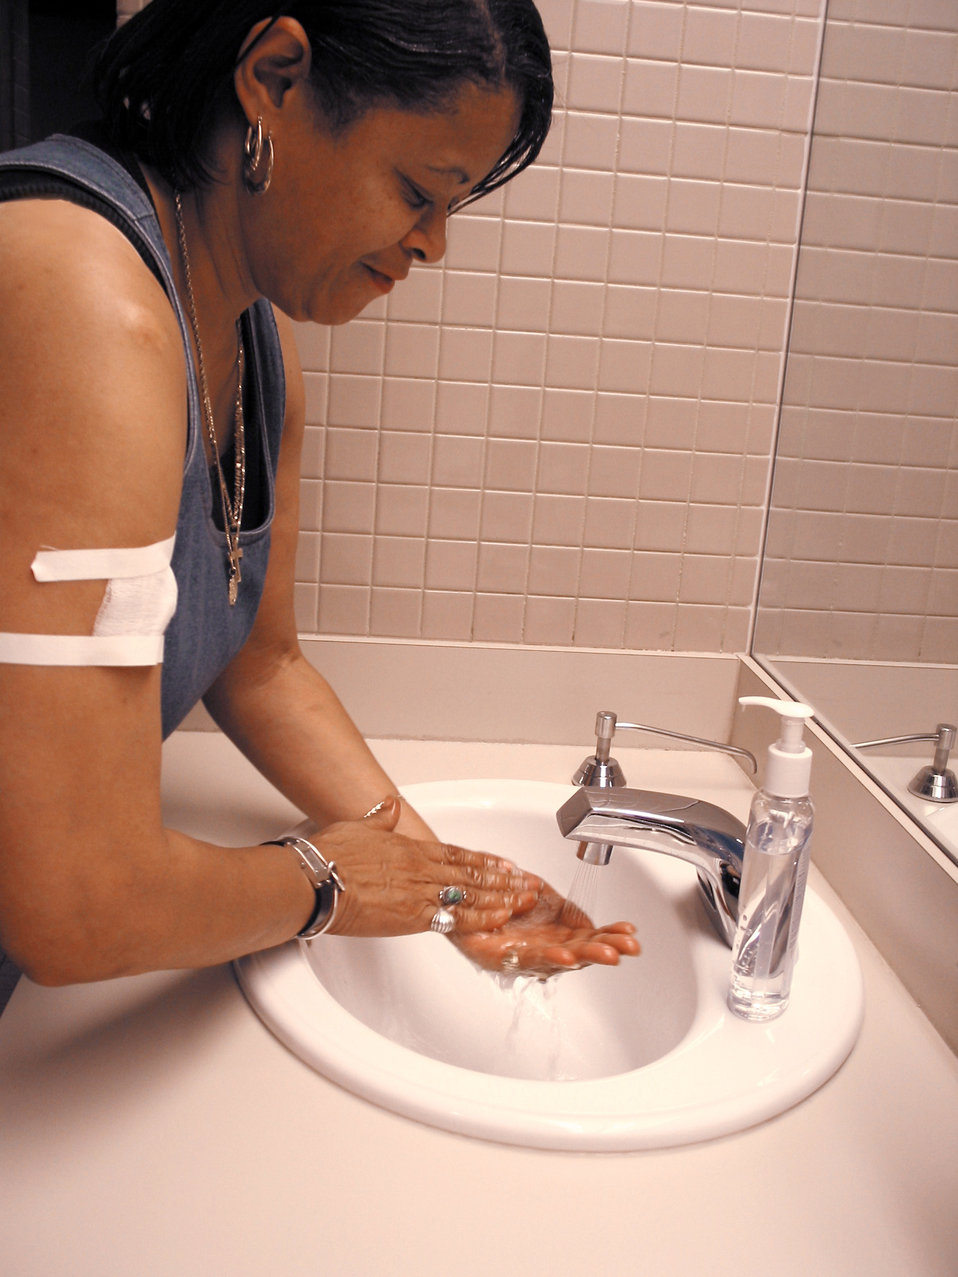 This image demonstrates how a smallpox vaccinee washes her hands after handling her vaccination site bandage.